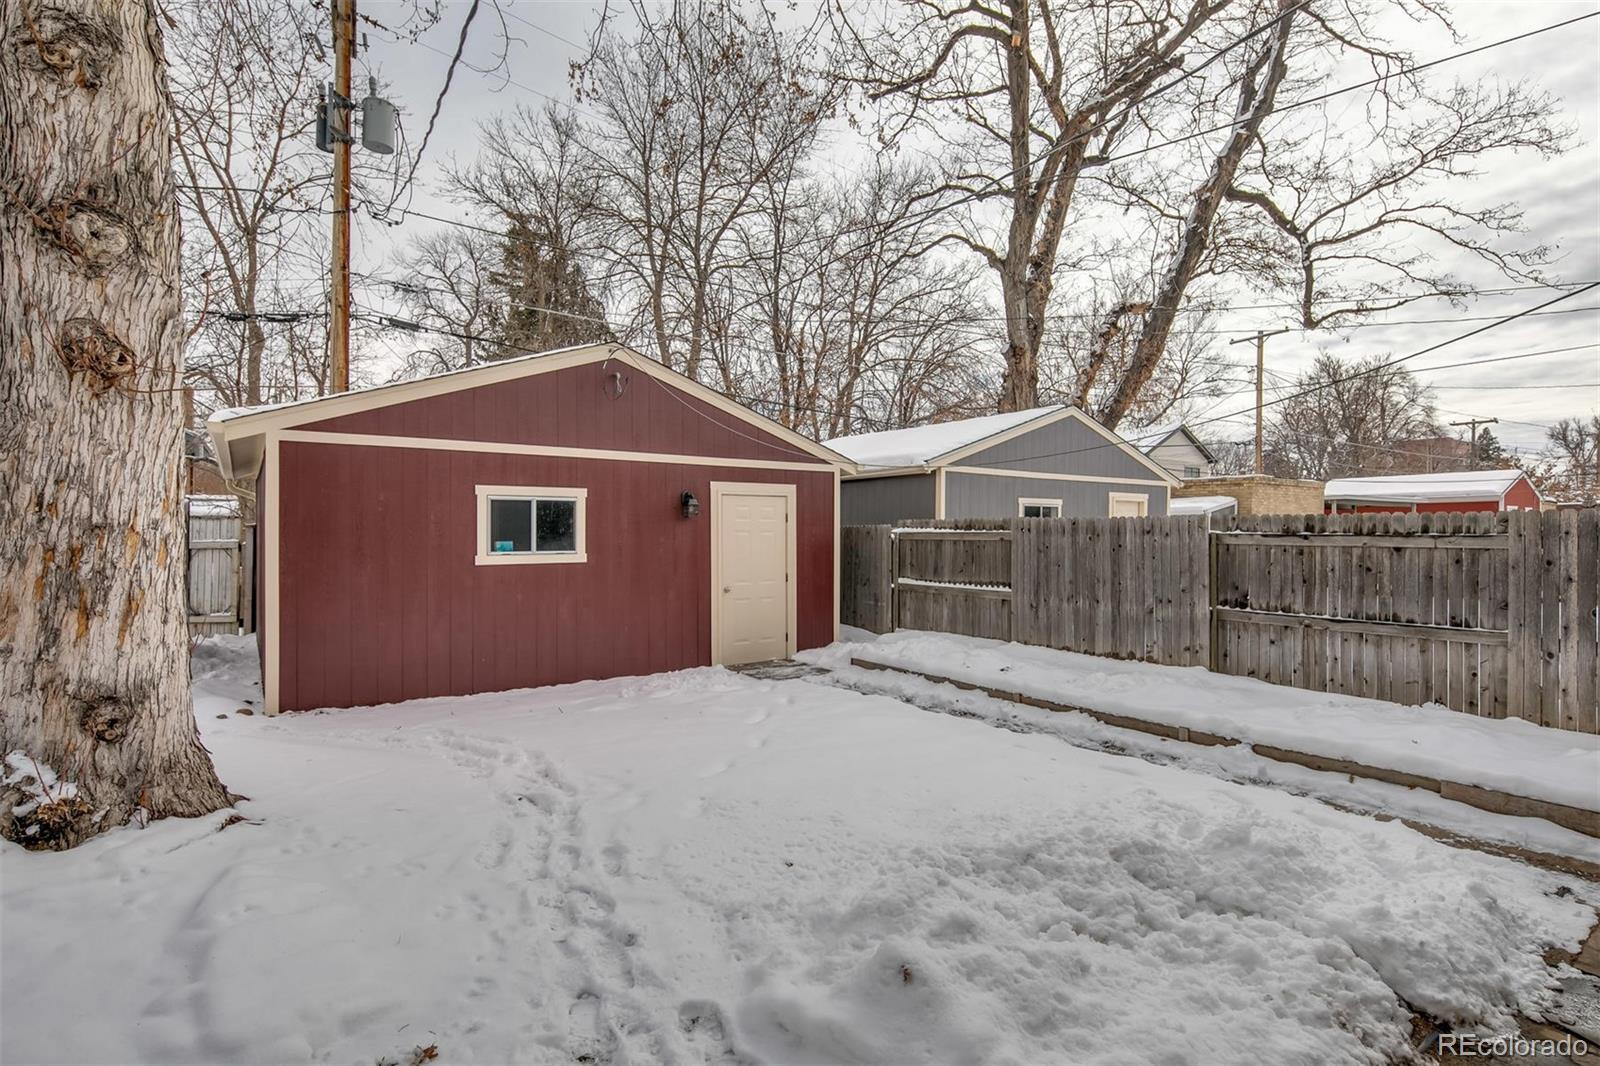 MLS# 5026749 - 27 - 1676 Garfield Street, Denver, CO 80206